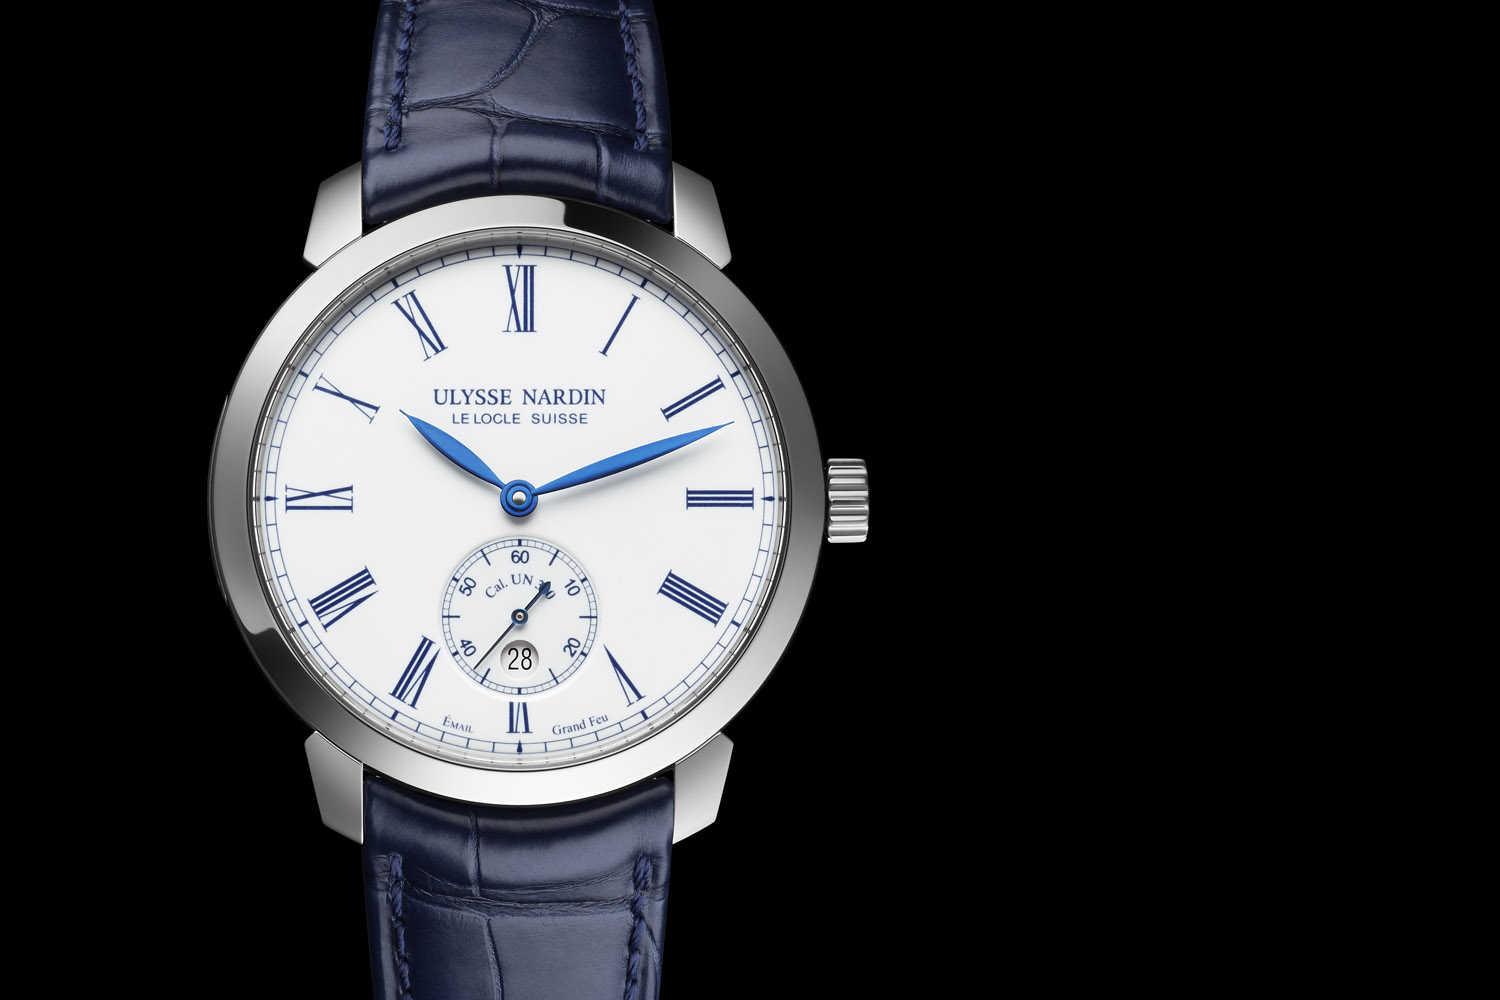 Perpetual Calendar Watches With Moon Phase A Lange Shne 1815 Rattrapante Perpetual Calendar Introducing Ulysse Nardin Classico Manufacture With